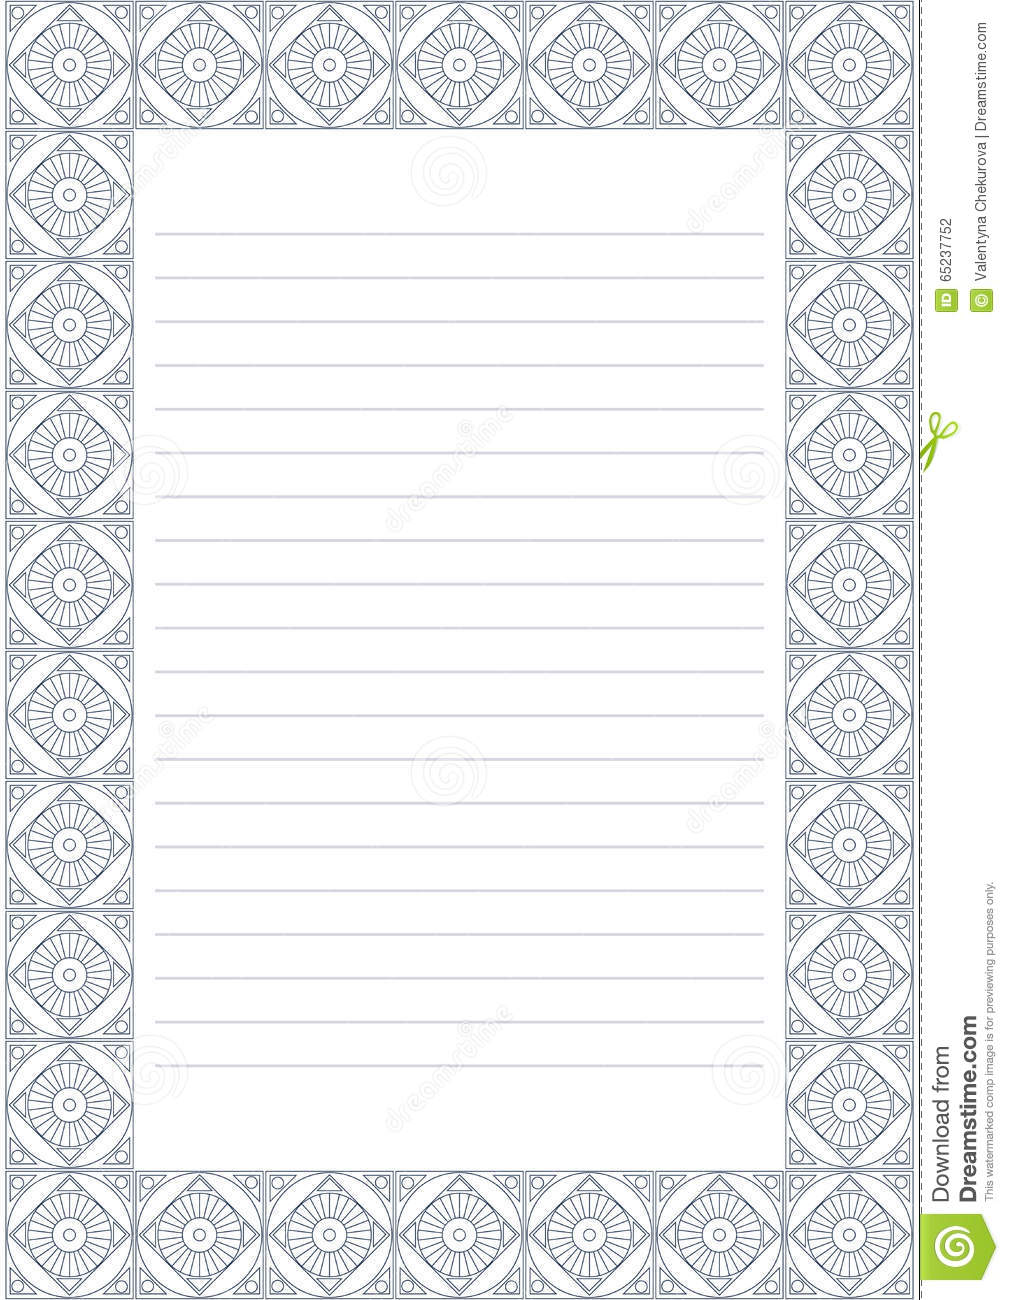 ... paper form with pastel blue decorative ornamental border. A4 format